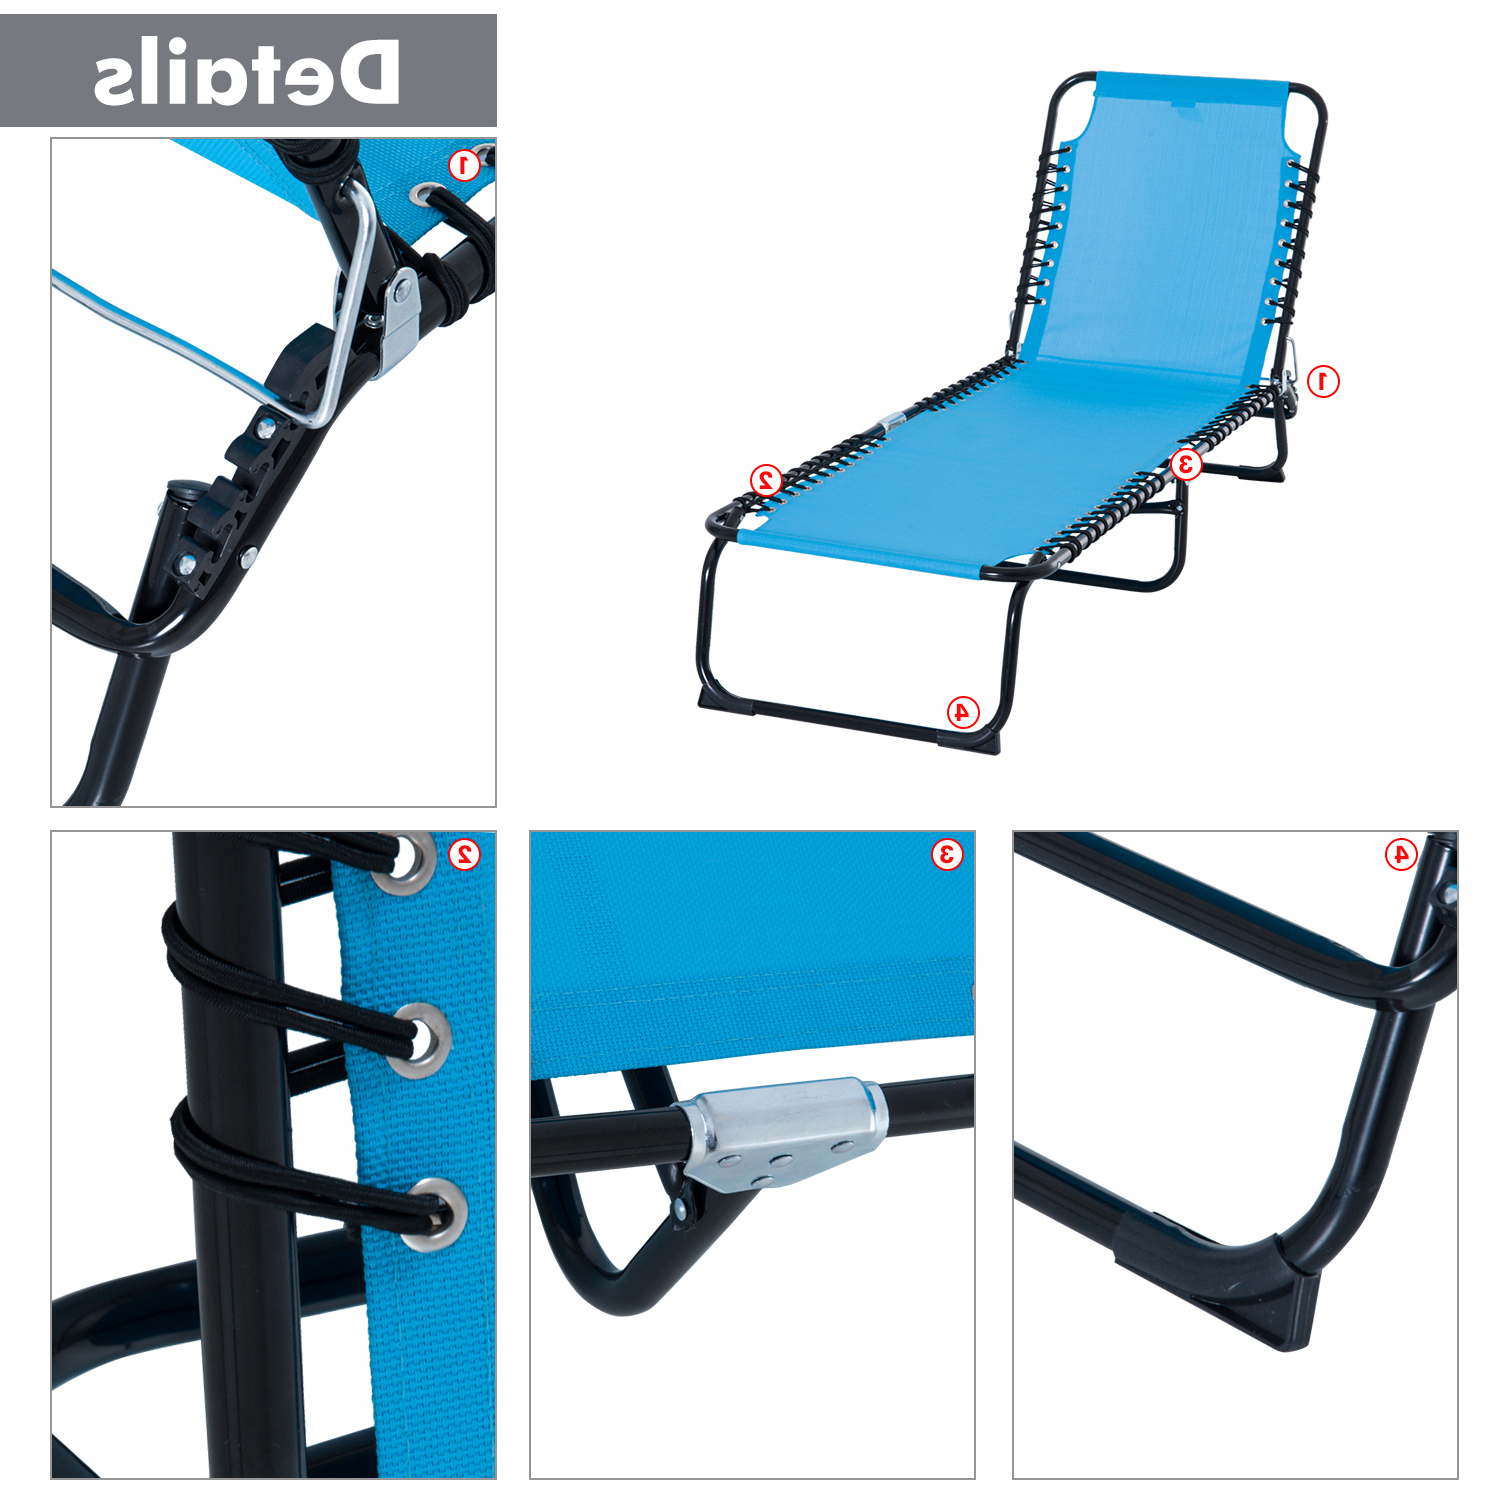 3 Position Portable Folding Reclining Beach Chaise Lounges Regarding Latest Outsunny Portable 3 Position Reclining Folding Beach Chaise Lounge Chair (View 12 of 25)